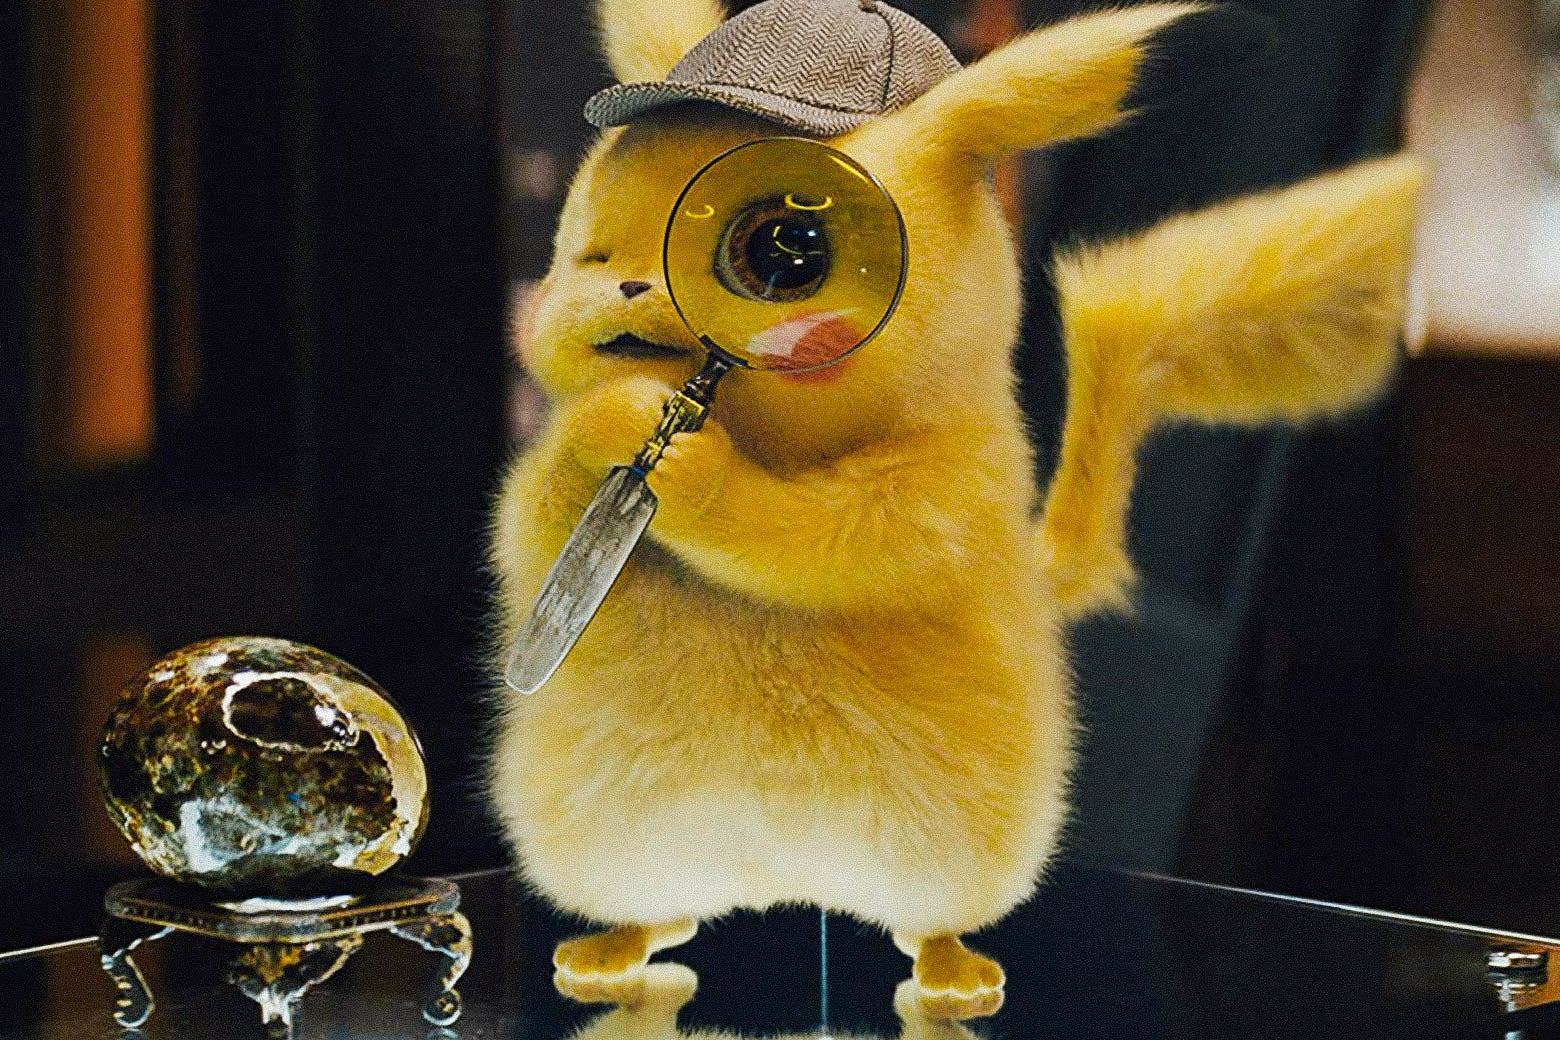 A Pikachu, voiced by Ryan Reynolds, is wearing a detective hat and holding a very large magnifying glass up to its face.